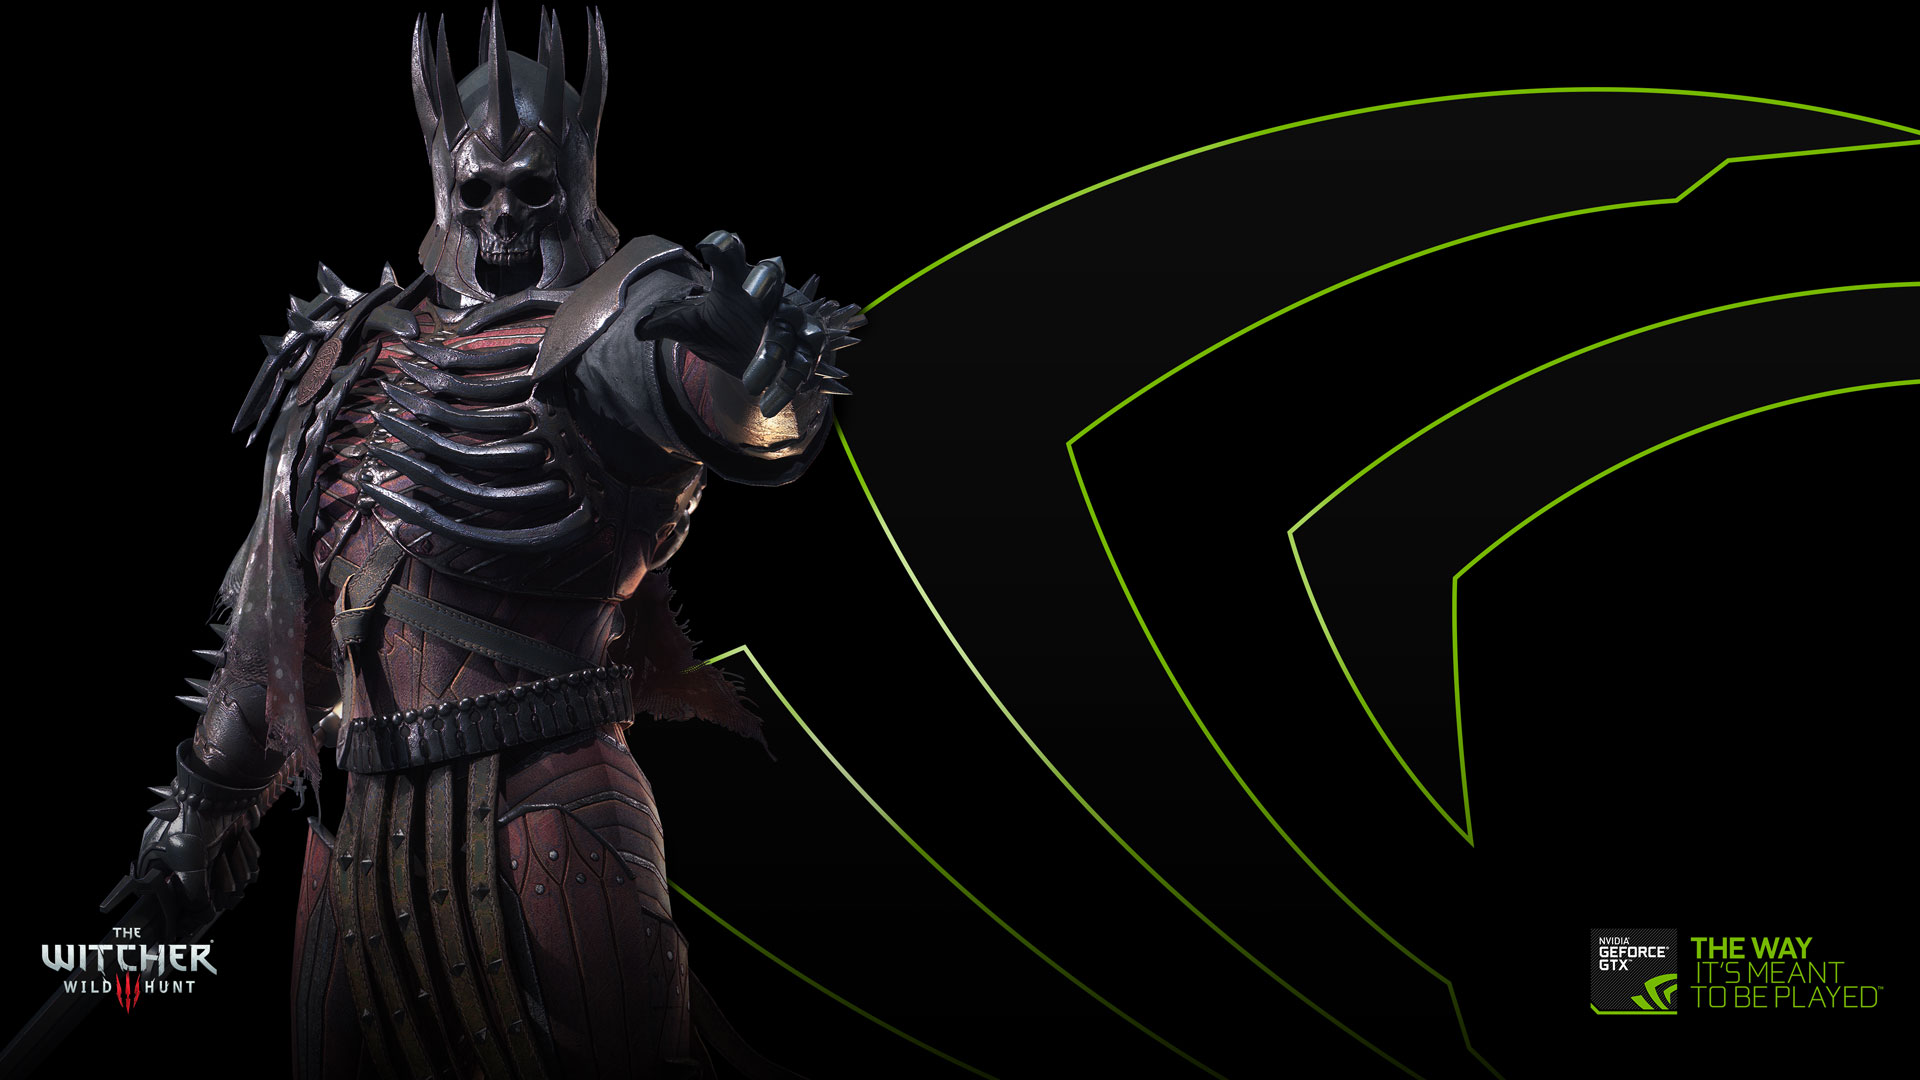 Free Geforce Wallpapers For Your Gaming Rig Nvidia